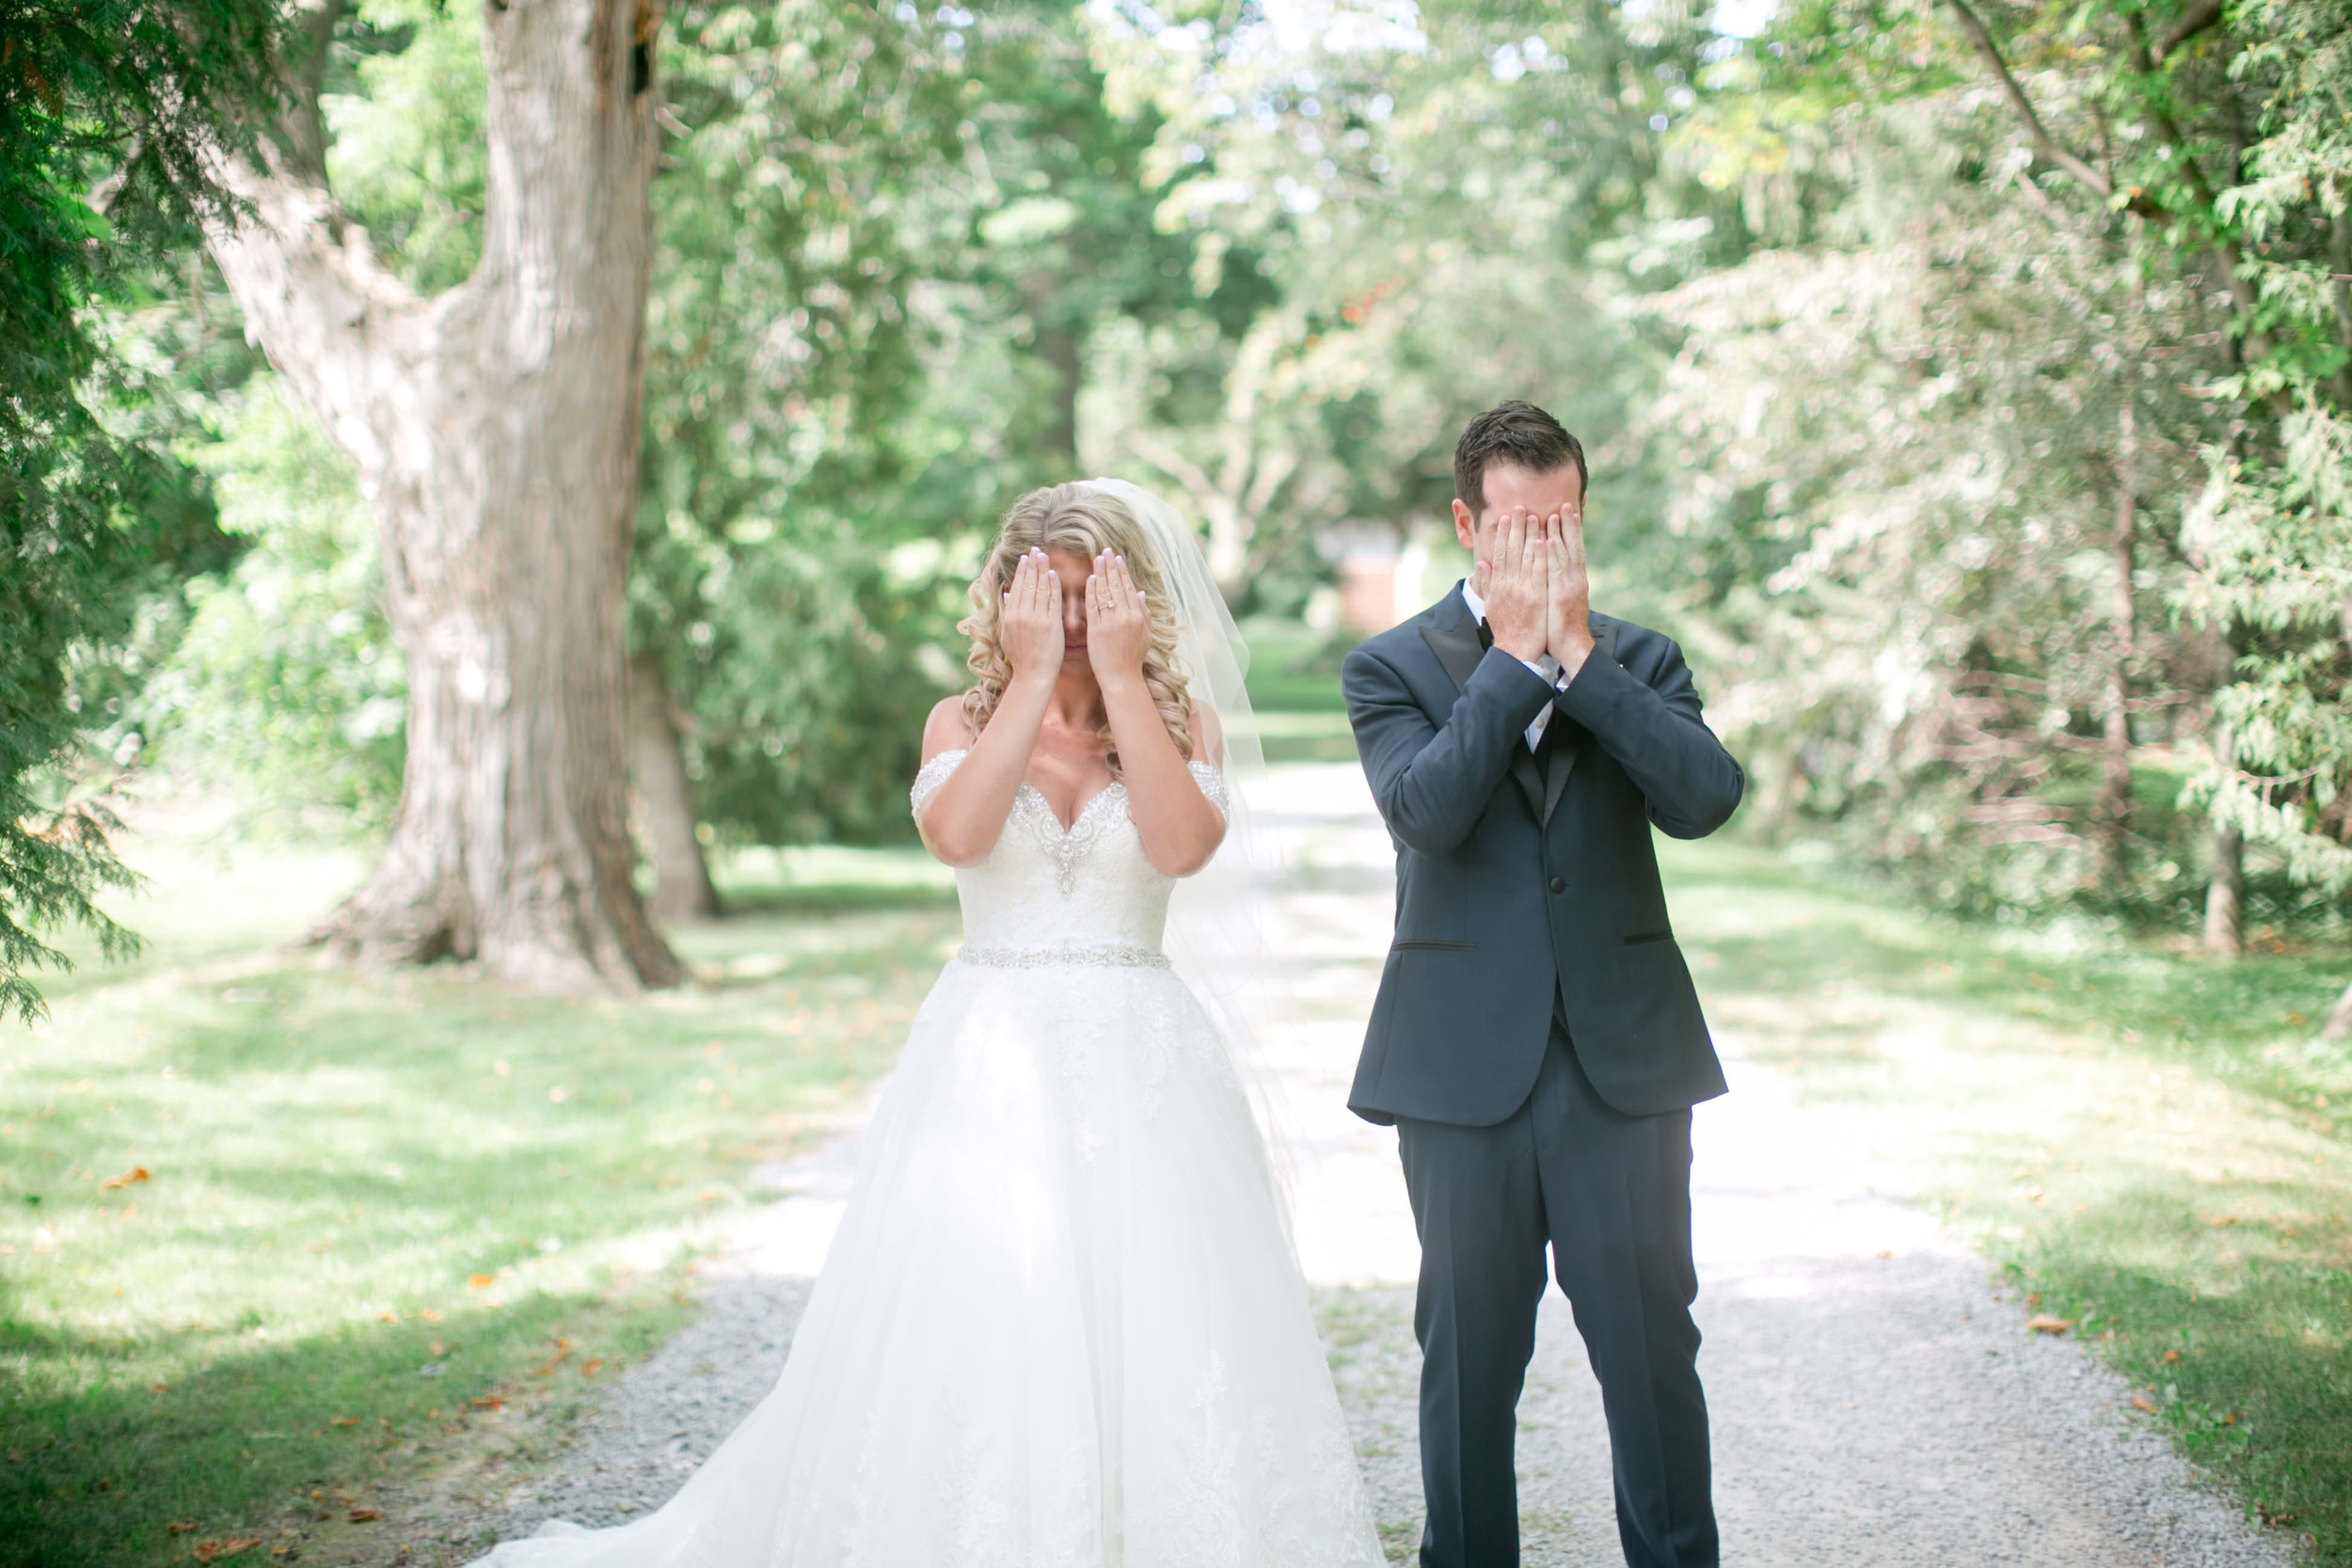 Ashley___Zac___Daniel_Ricci_Weddings___High_Res._Finals_85.jpg